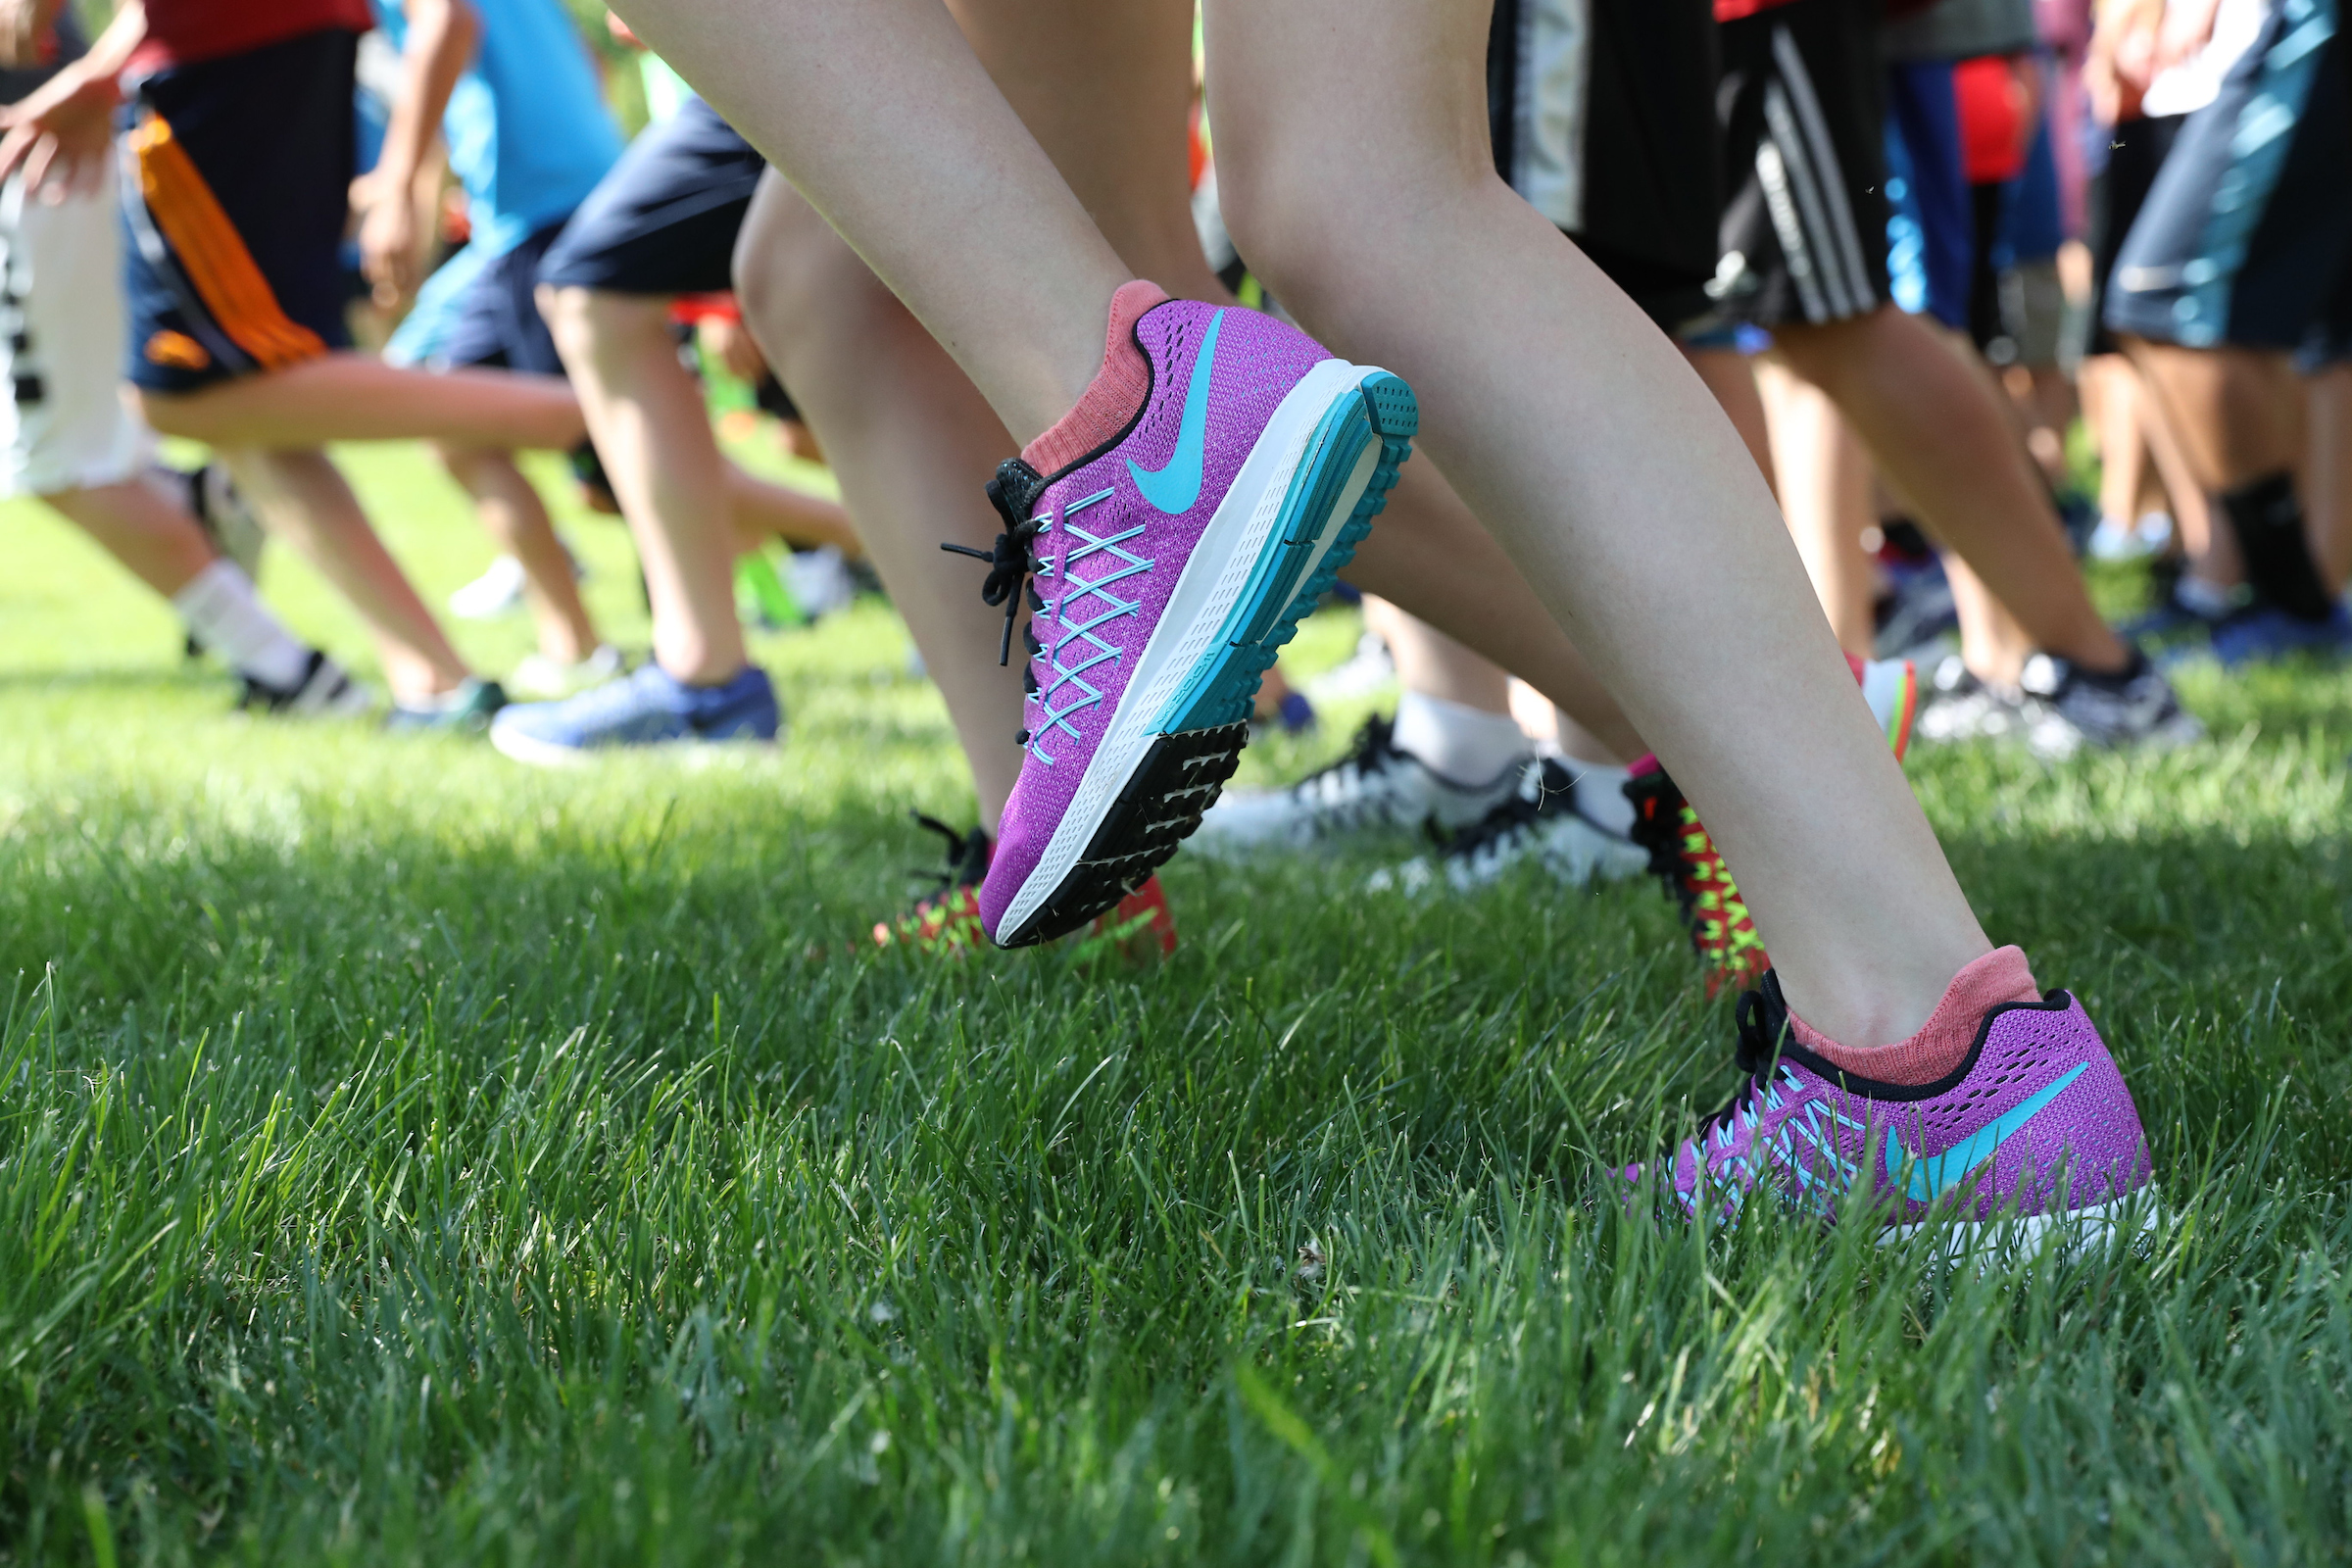 Register early to get your free Nike shoes!